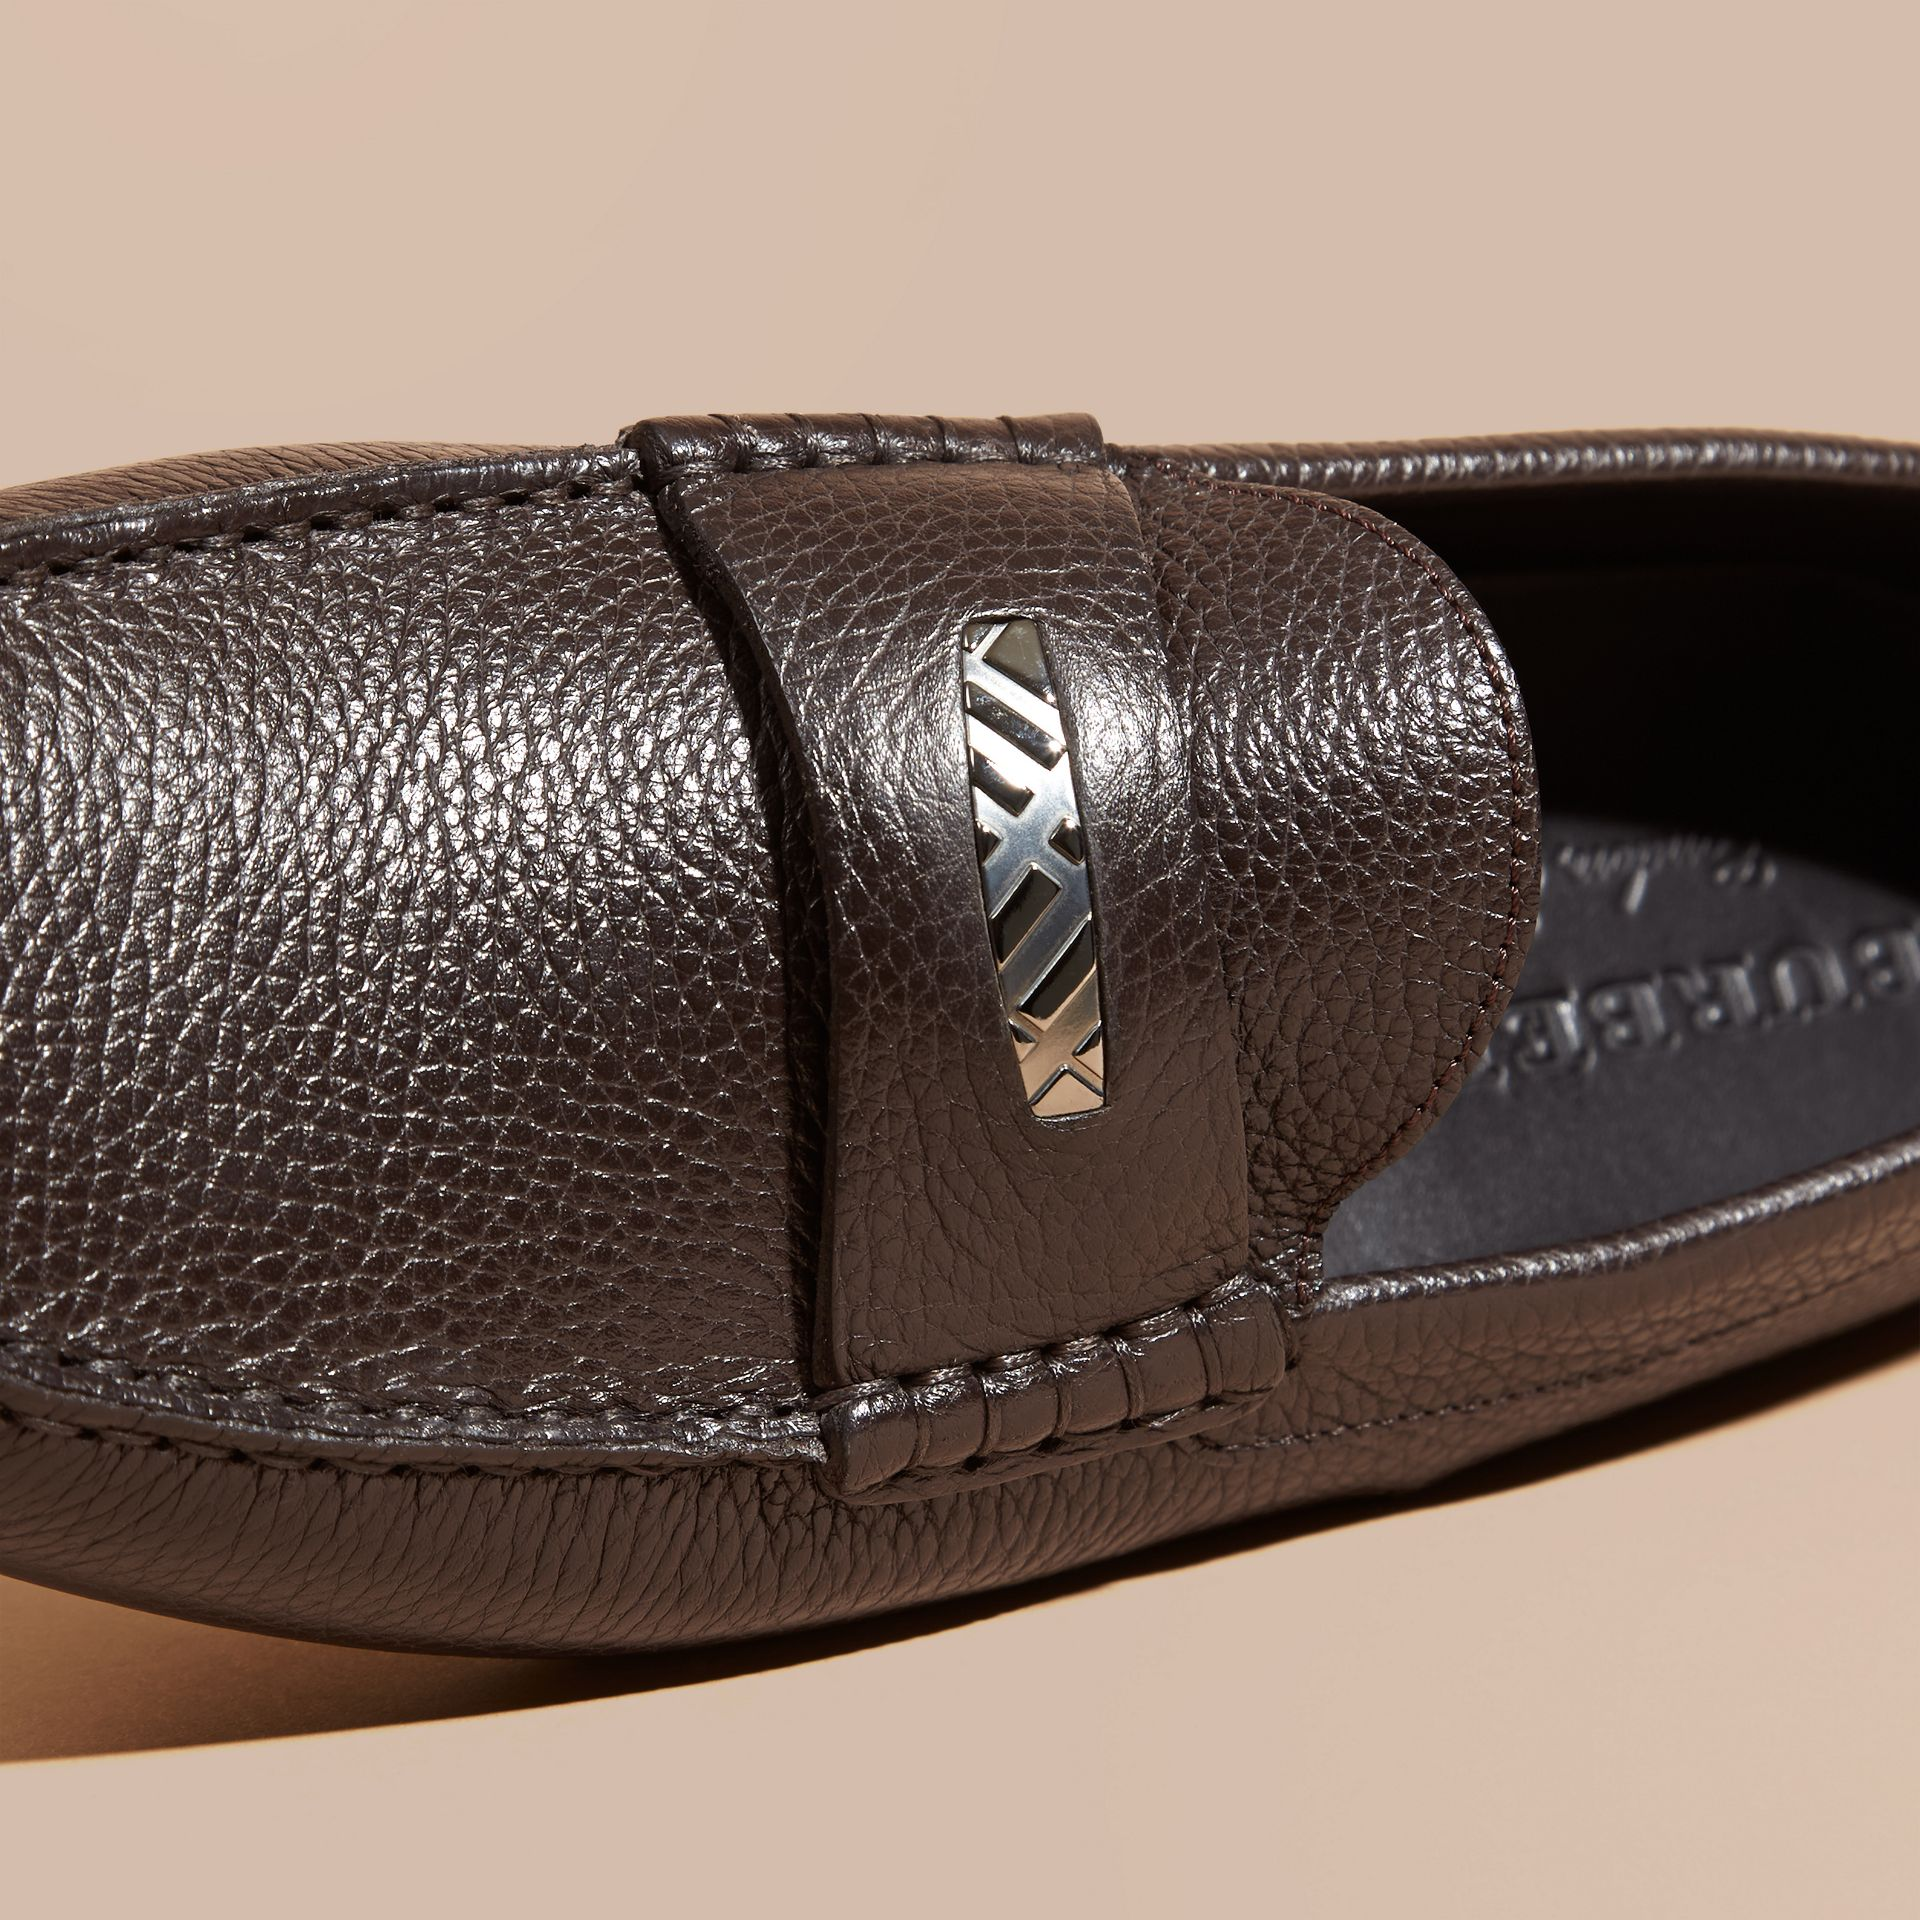 Dark chocolate Grainy Leather Loafers with Engraved Check Detail Dark Chocolate - gallery image 2